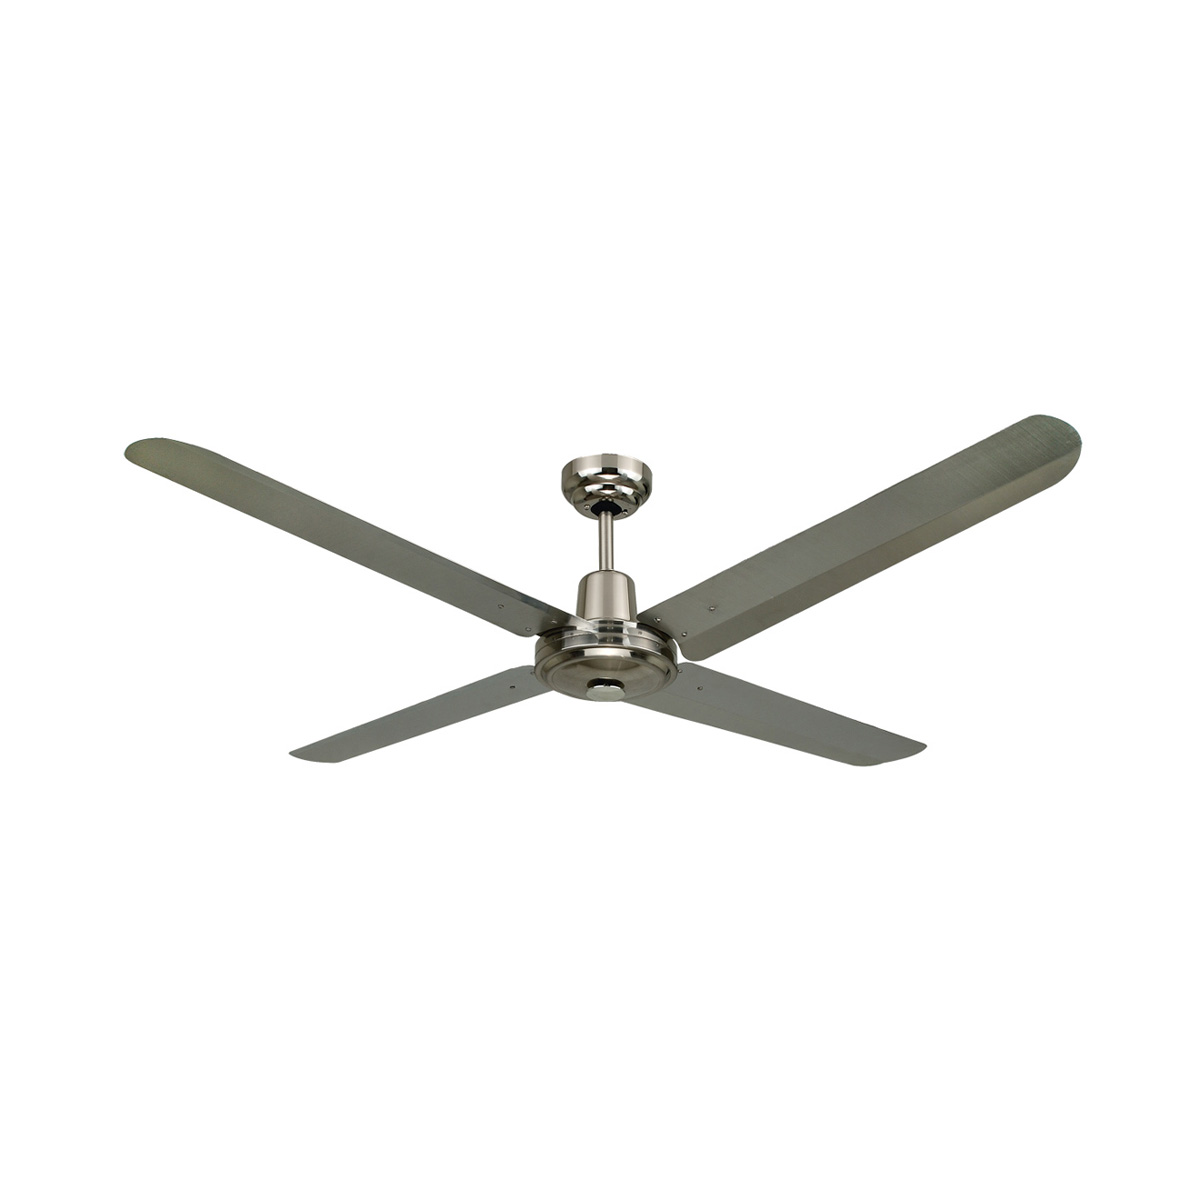 Blizzard 4 blade 56 inch 316 marine grade stainless steel ceiling blizzard56 1200mm 316ss ceiling fan blizzard56 aloadofball Choice Image